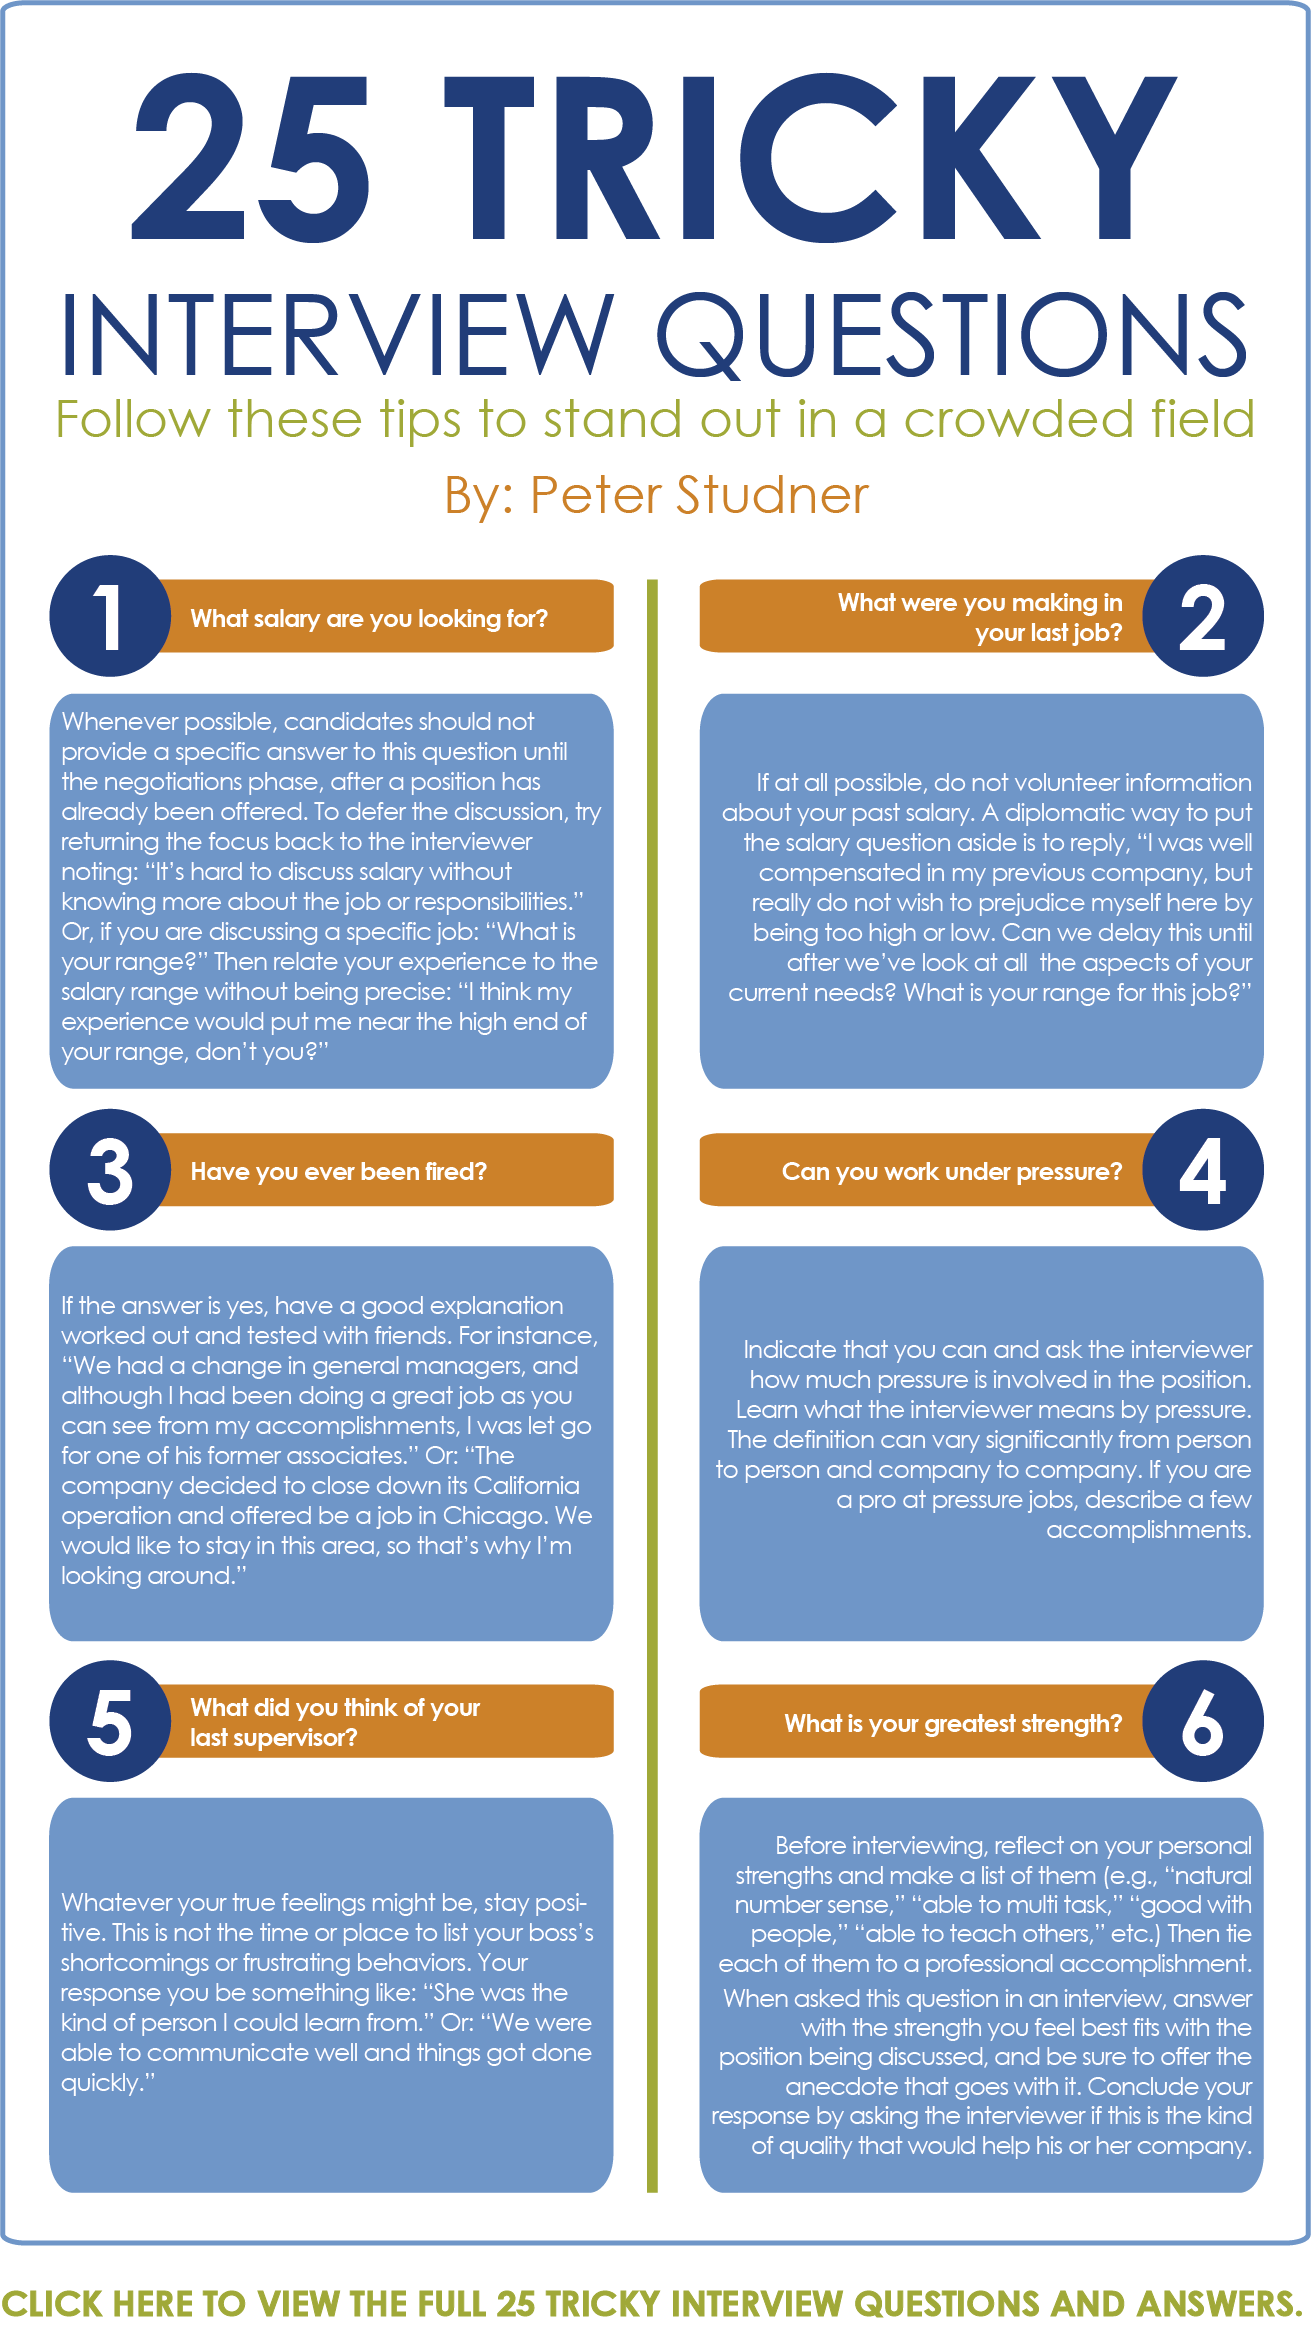 Infographic 10 Of 25 Tricky Interview Questions